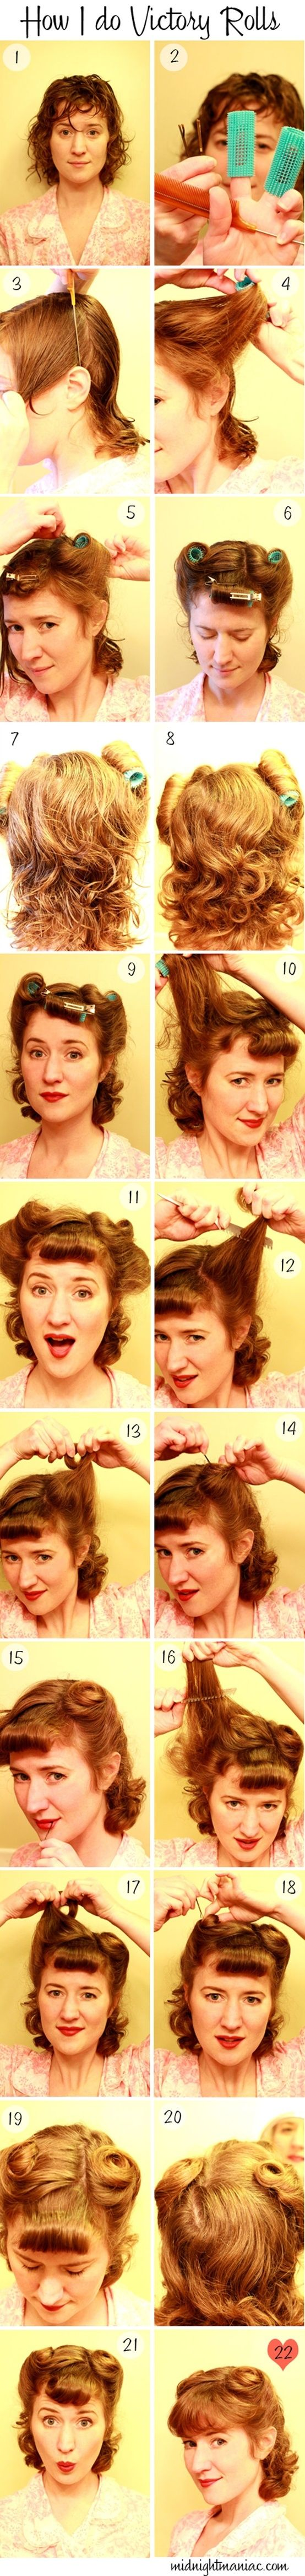 Victory Rolls tutorial by tonia